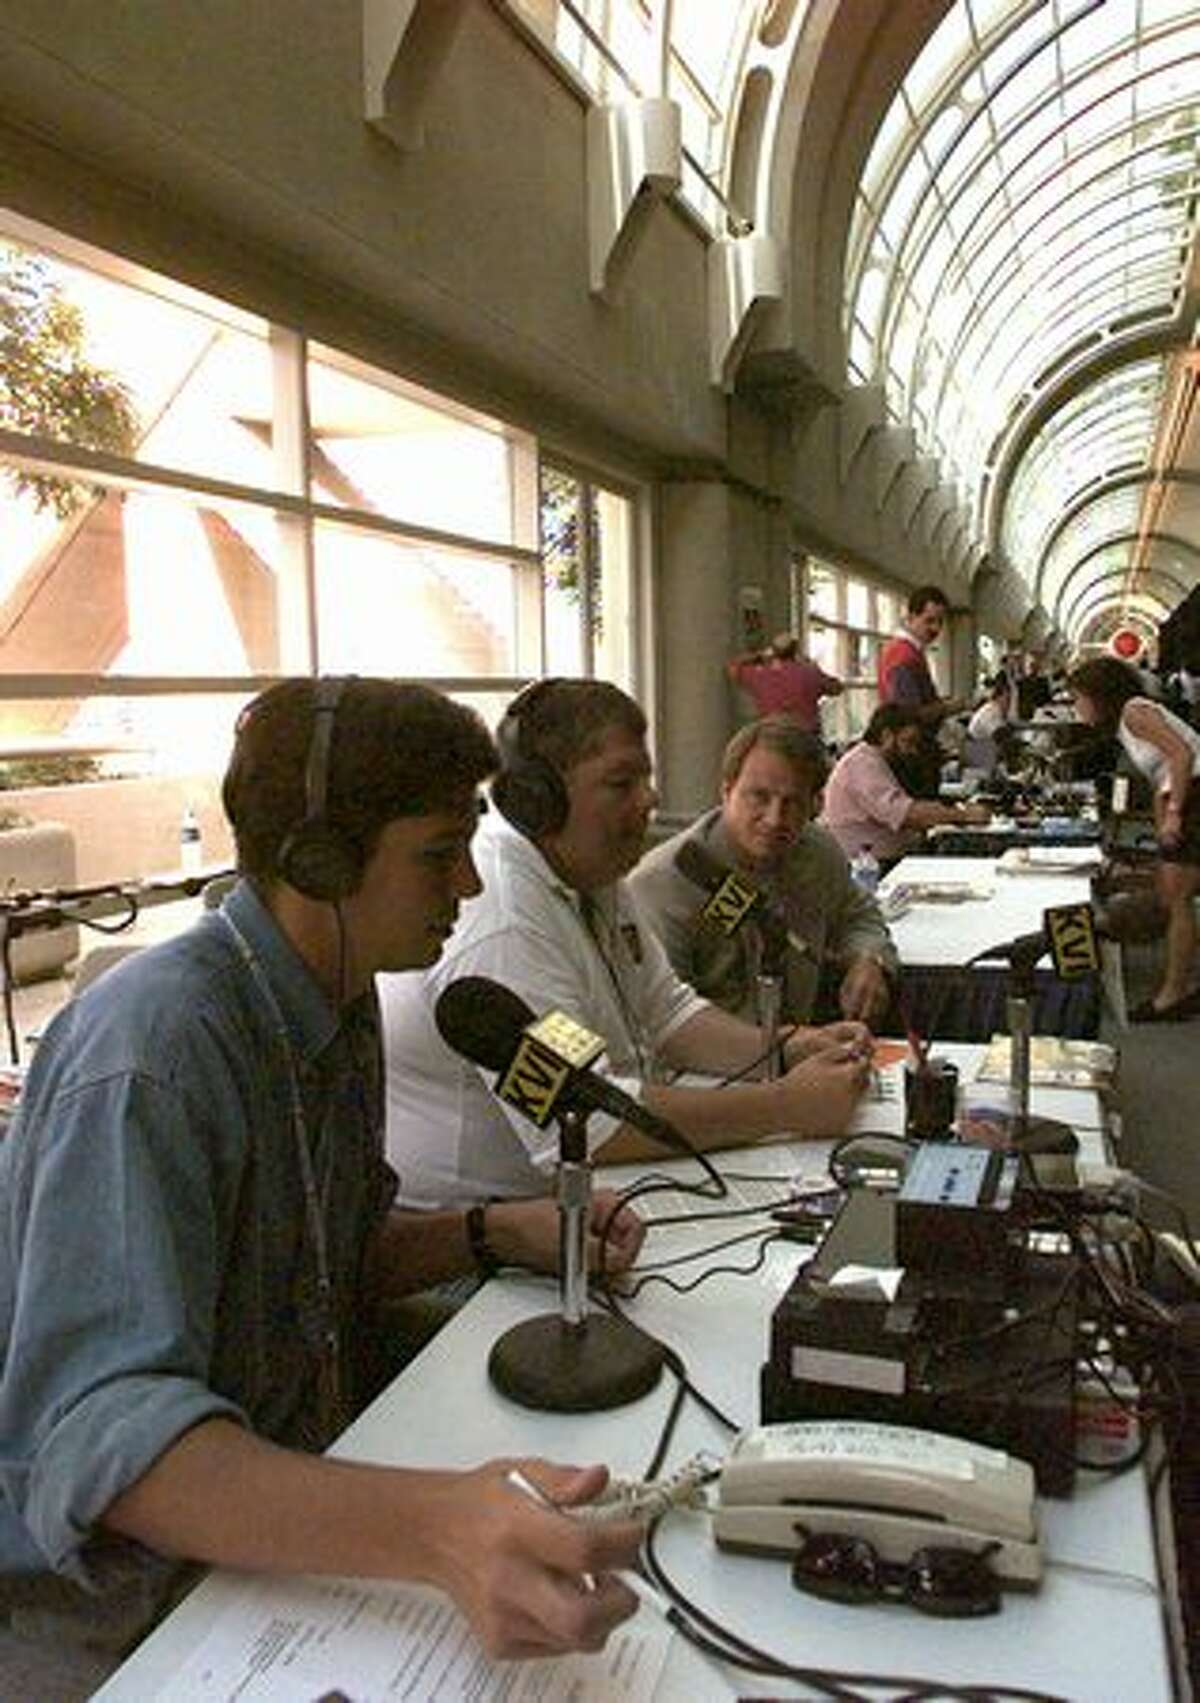 KVI radio's G. Schroeder, left, Kirby Wilbur, center, and Rob Strauss do their program from the second floor of the San Diego Convention Center, Aug. 13, 1996. (V. Arocho/seattlepi.com file)